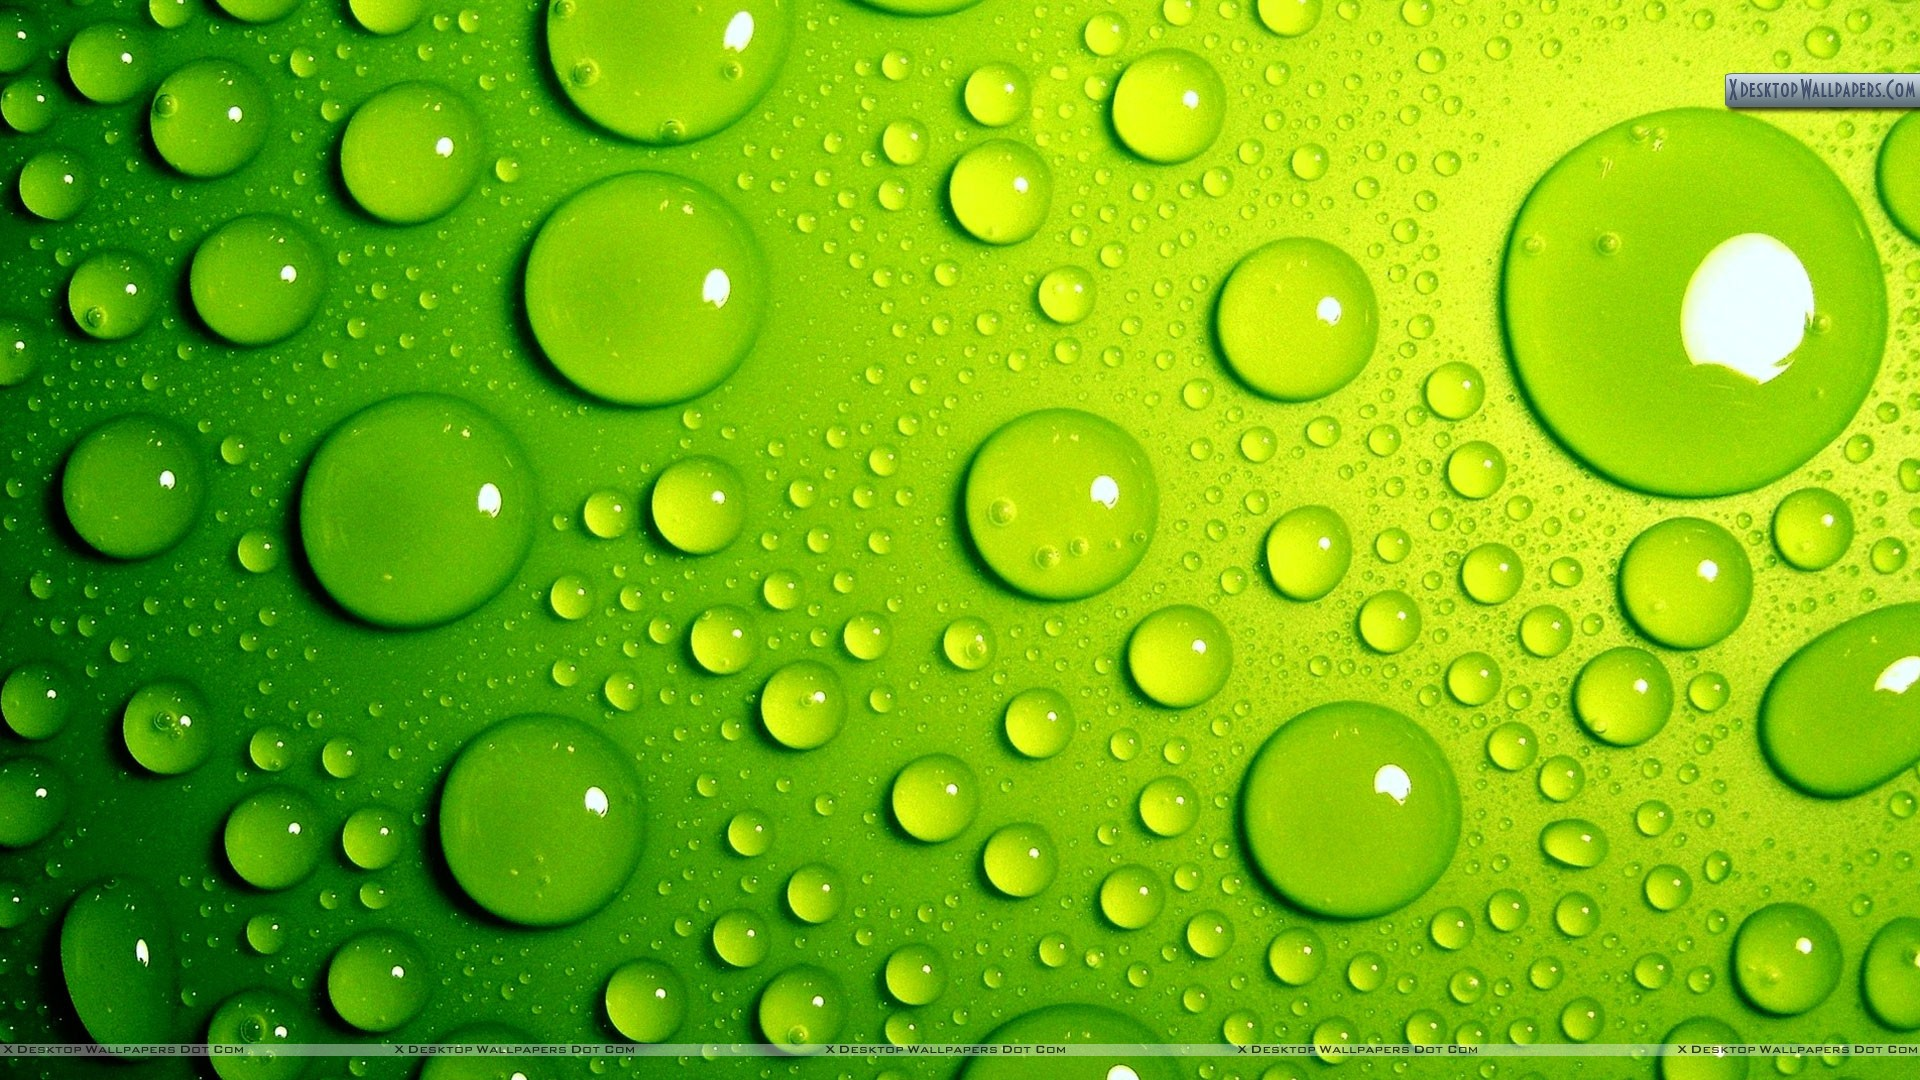 Green-Bubbles-Awesome-Background.jpg